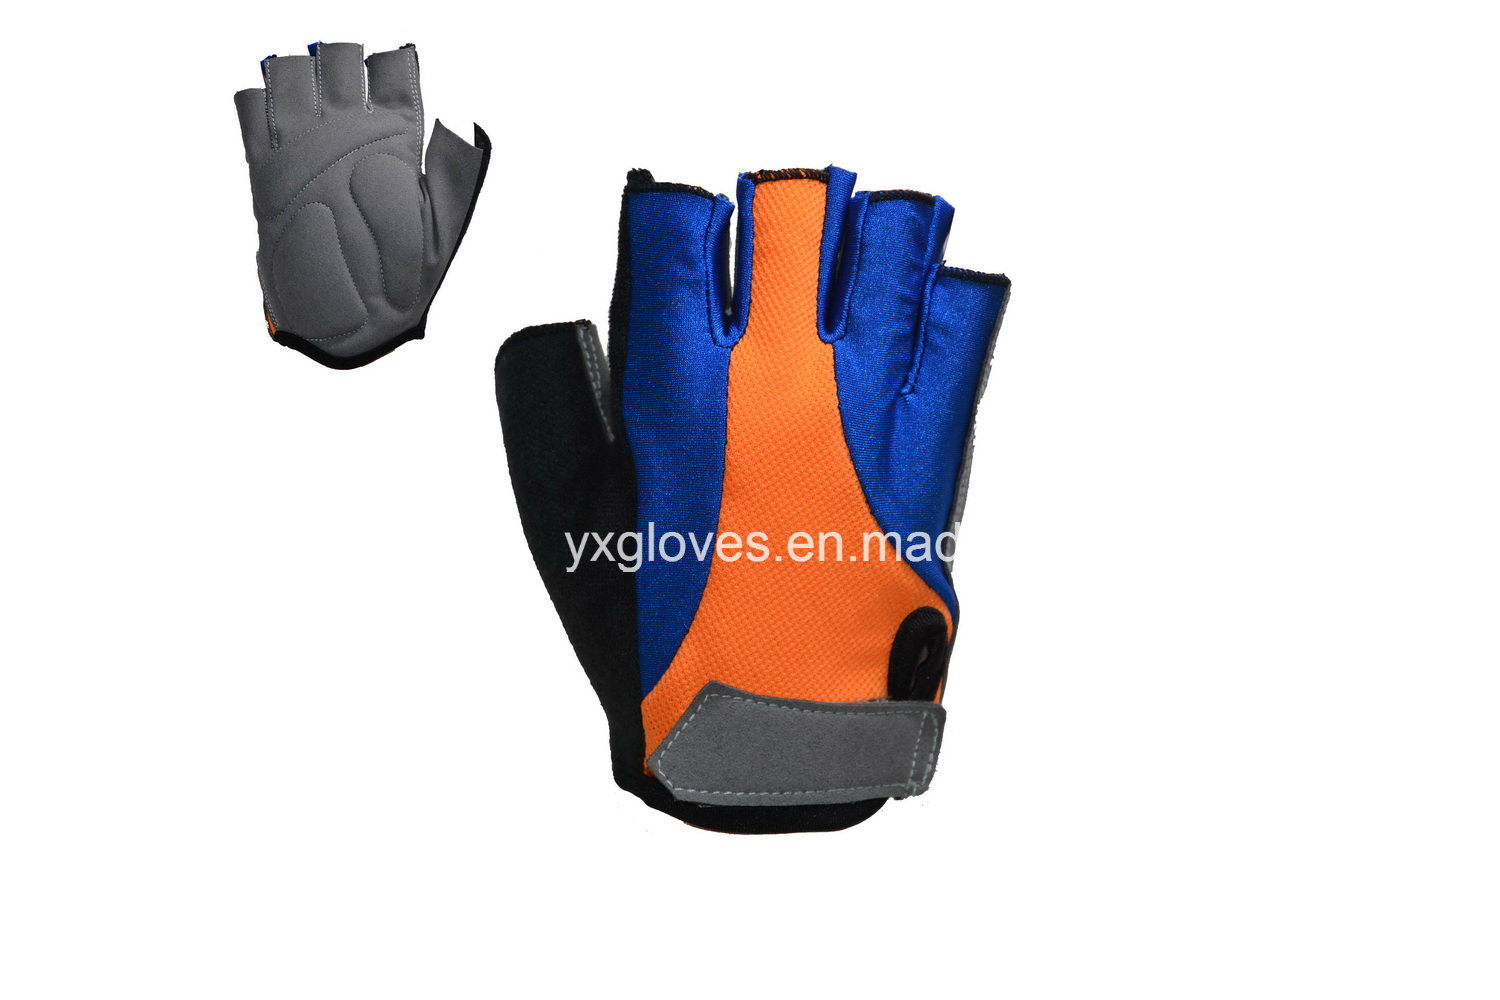 Bicycle Glove-Weight Lifting Glove-Sport Glove